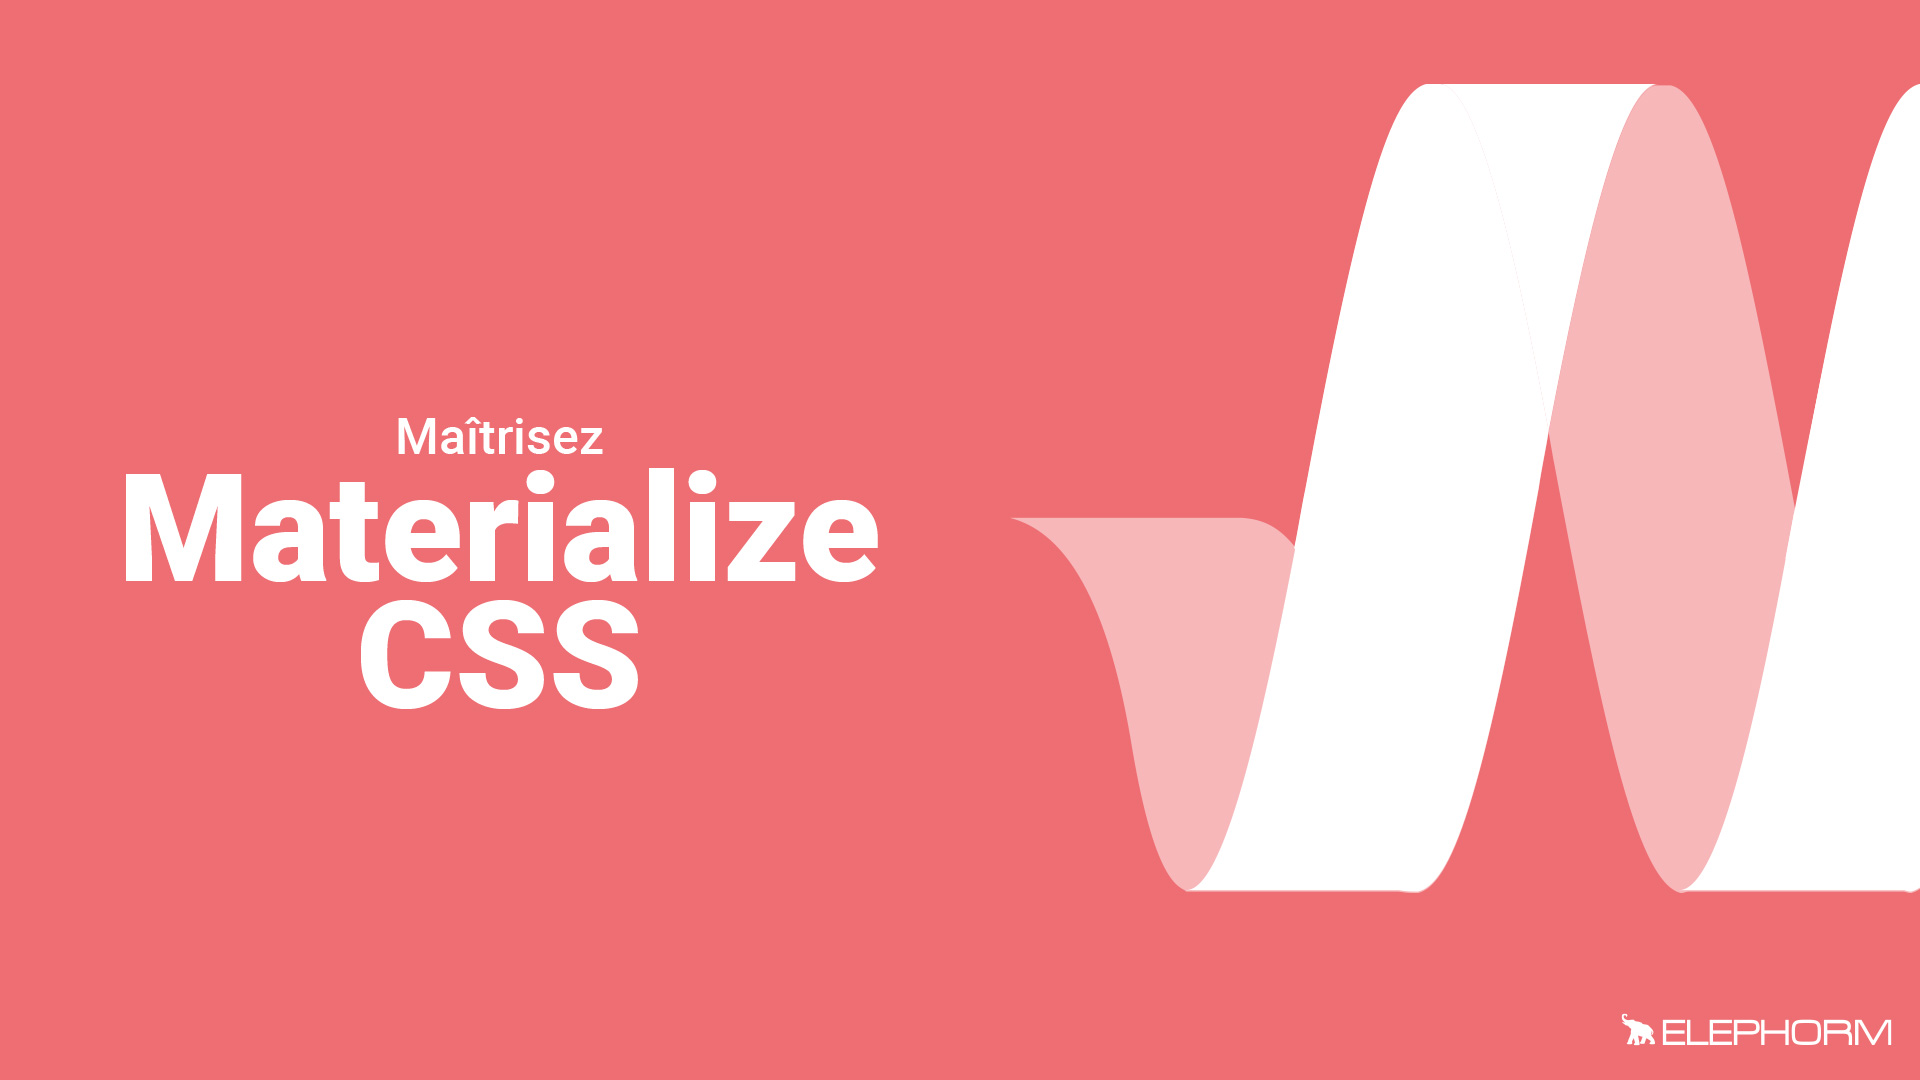 Maîtriser Materialize CSS